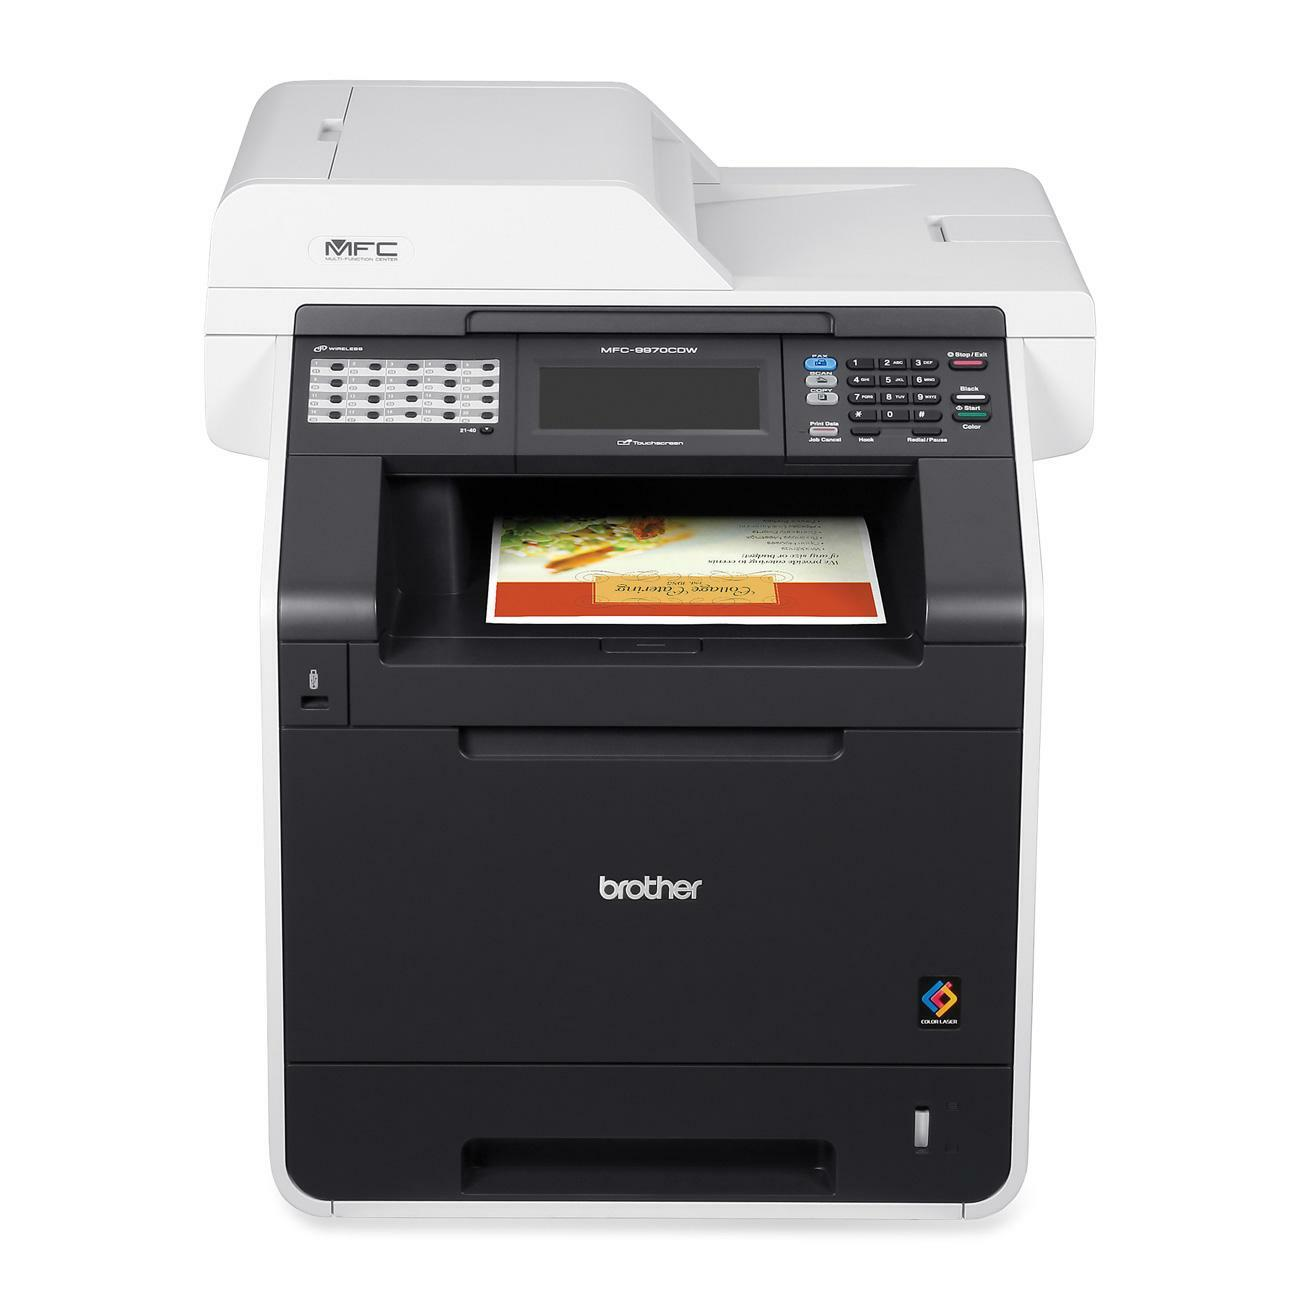 brother mfc 9970cdw software user guide free owners manual u2022 rh wordworksbysea com brother mfc-9970cdw software user's guide brother mfc-9970cdw network user guide